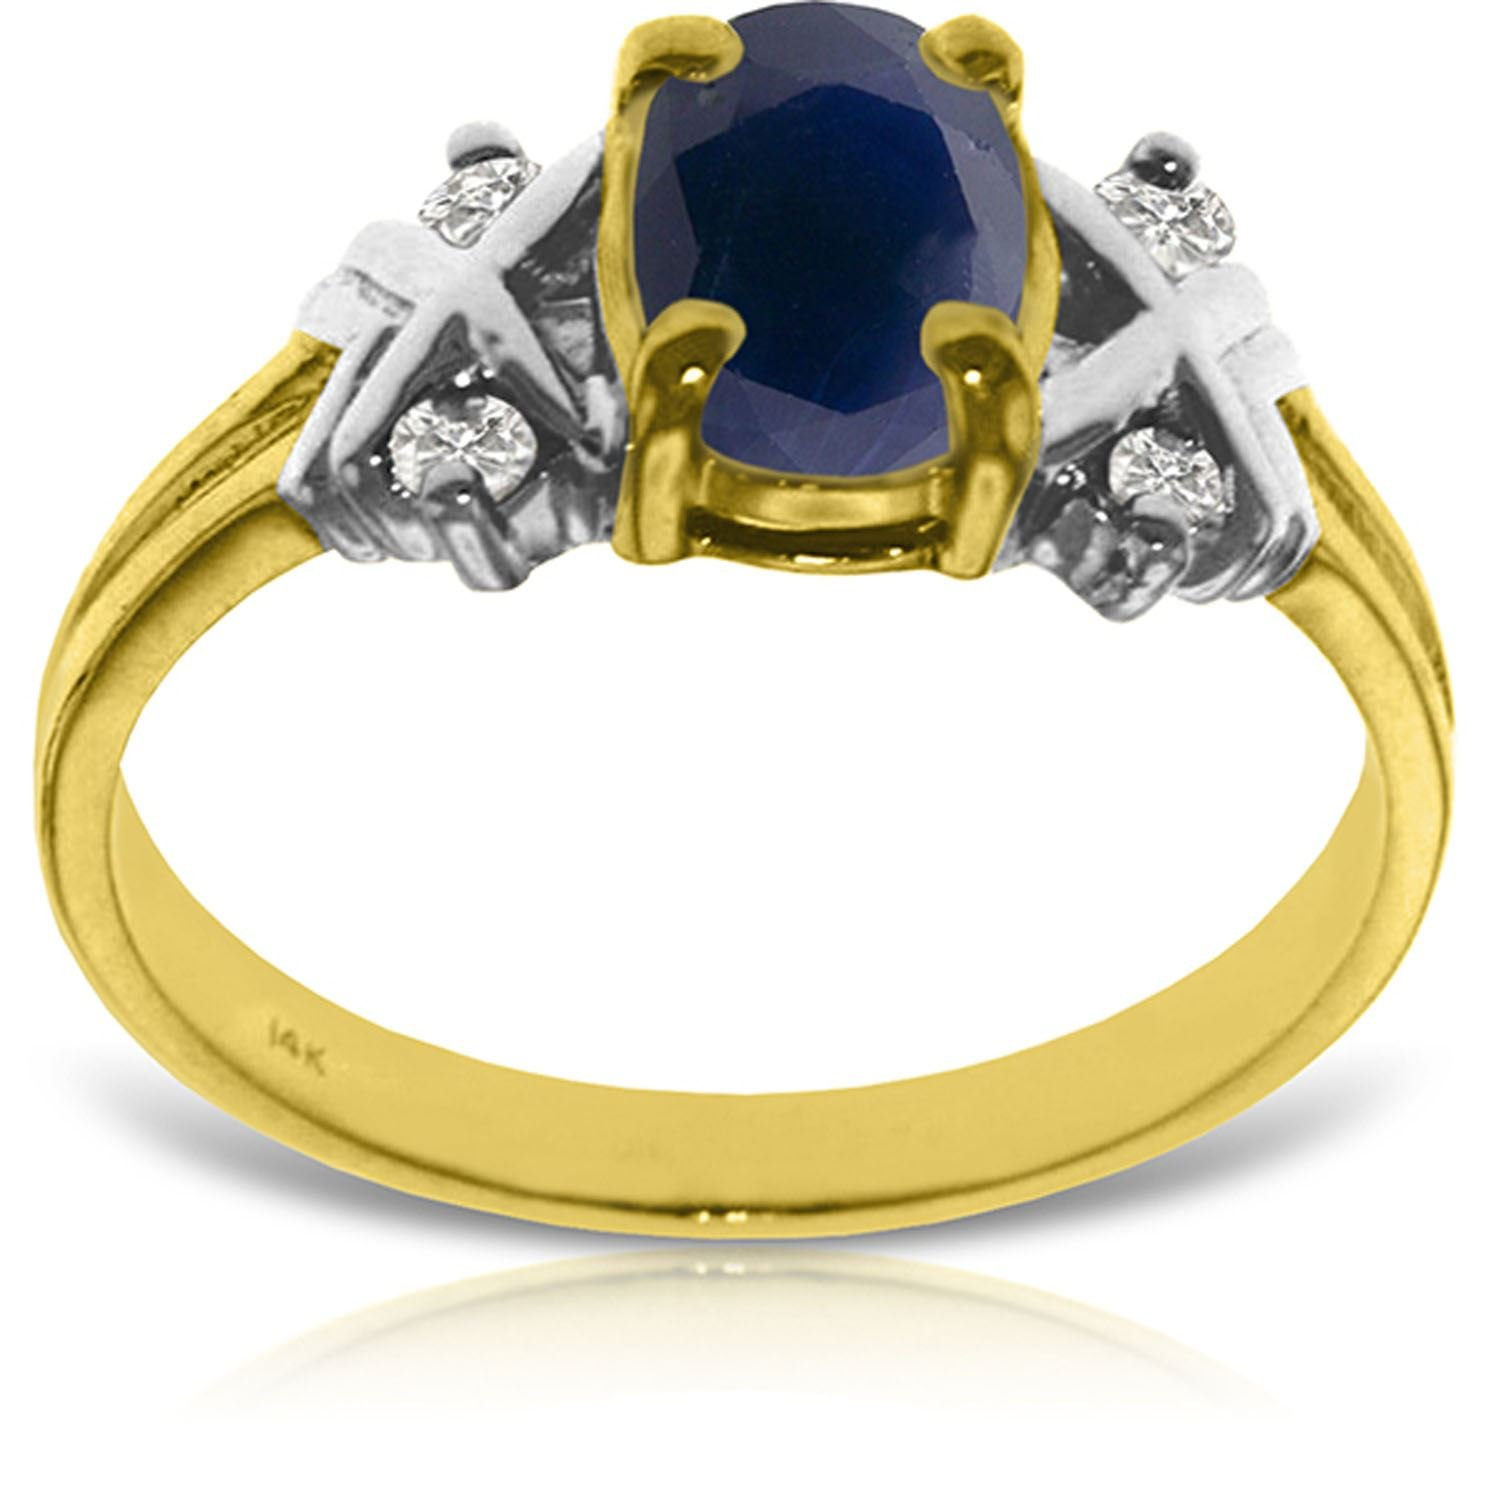 ALARRI 1.47 Carat 14K Solid Gold Love Lessons Sapphire Diamond Ring With Ring Size 6 by ALARRI (Image #2)